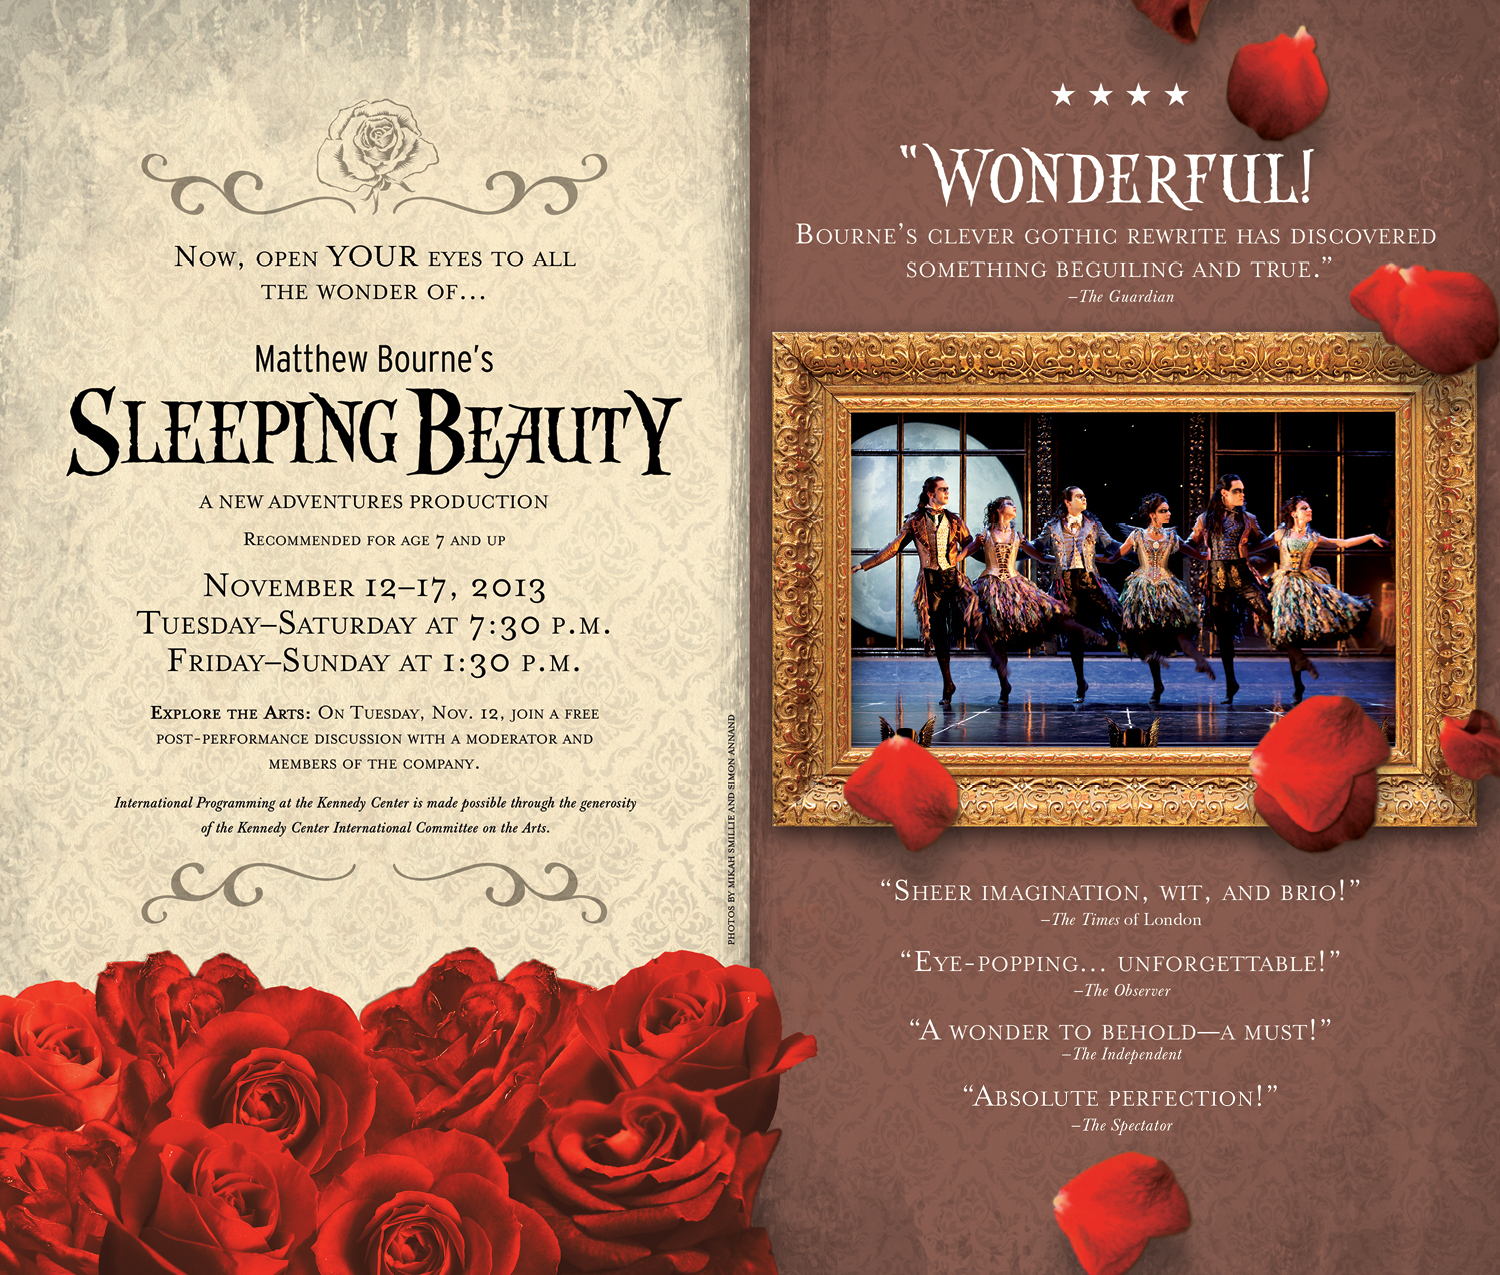 MatthewBourne-SleepingBeauty8.jpg